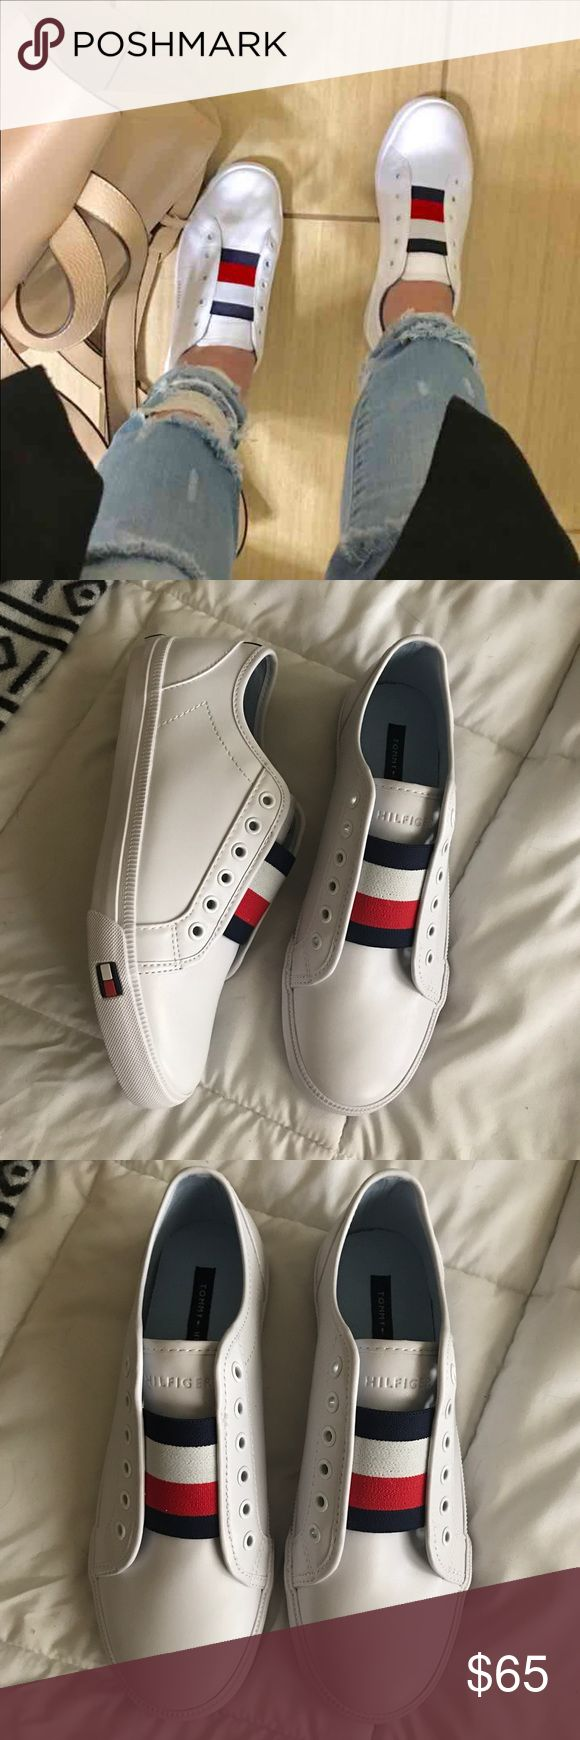 72d78c8fe4c40e Ew Tommy Hilfiger sneakers New never worn stylish Tommy Hilfiger sneakers  size 8. PRICE IS FIRM. Free gift with purchase Tommy Hilfiger Shoes Sneakers   ad